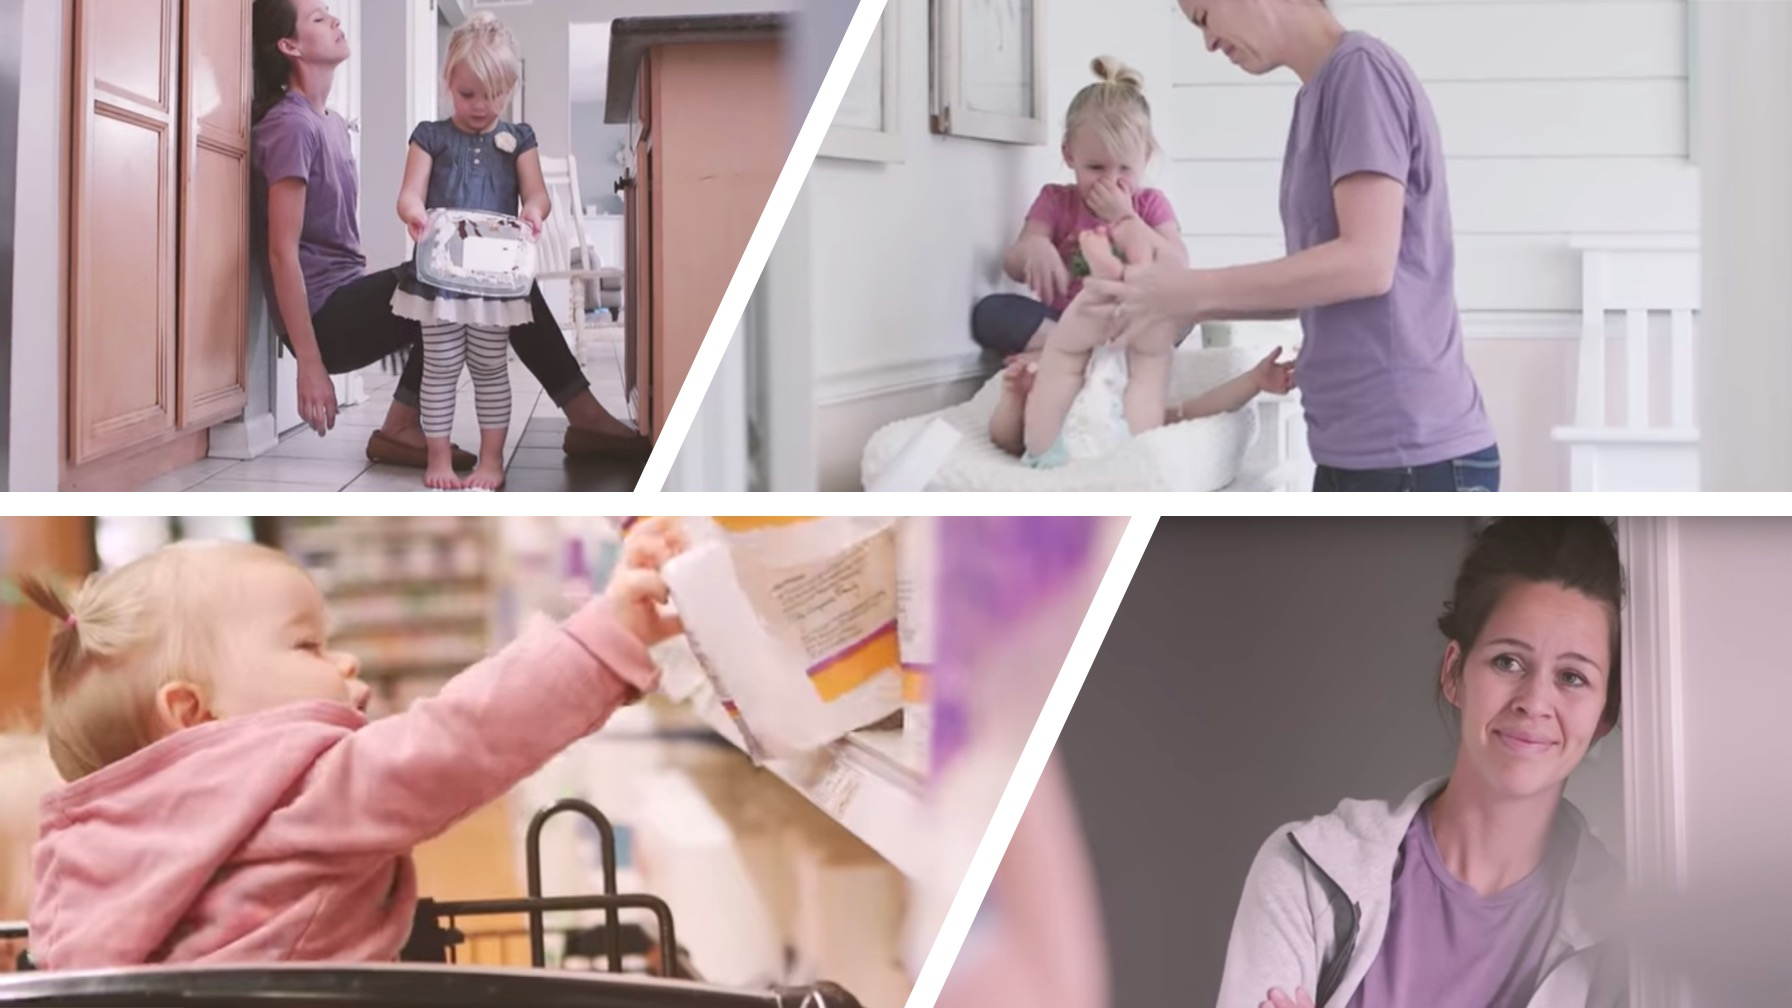 """Viral Video """"A Normal Day"""" Shows Us Mom's and Kid's Perspectives [WATCH]"""